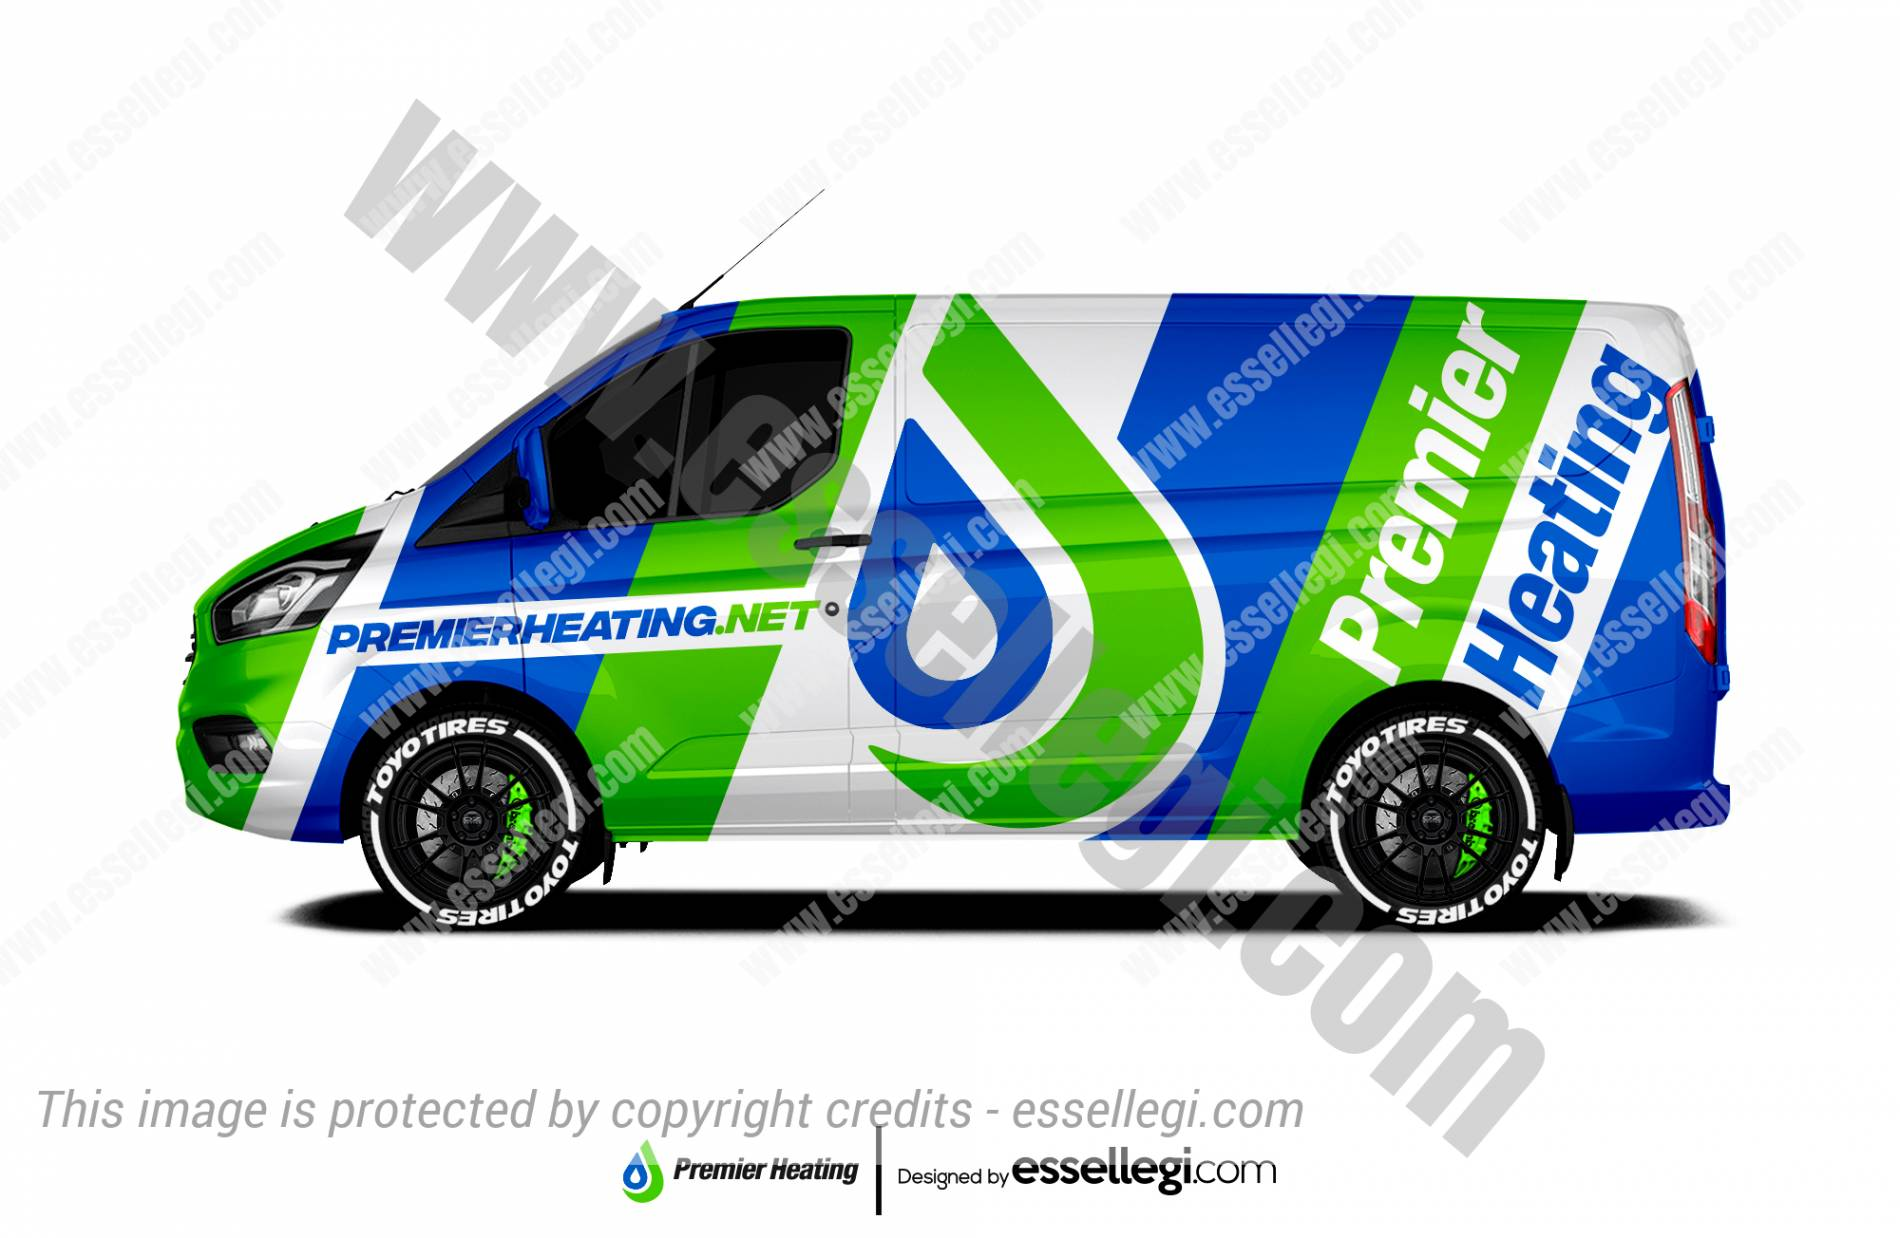 Ford Transit Custom Wrap Design. Ford Transit Custom Wrap | Van Wrap Design by Essellegi. Van Signs, Van Signage, Van Wrapping, Van Signwriting, Van Wrap Designer, Signs for Van, Van Logo, Van Graphic by Essellegi.